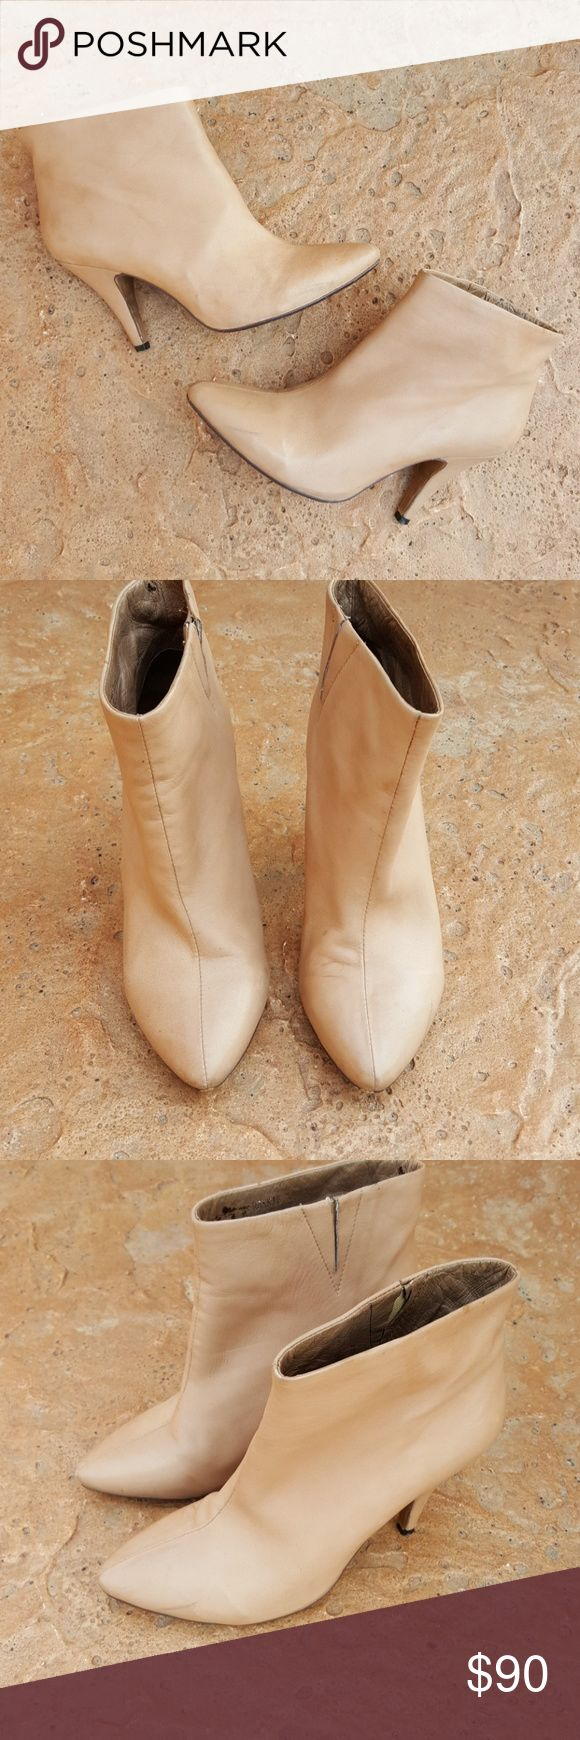 Jeffrey Campbell Ibiza Free People Booties Nude 8 HOST PICK STATEMENT STYLE 9-13-17! THANK YOU! Gorgeous nude blush leather booties from Jeffrey Campbell Ibiza Last collab with Free People. Size 8. Style name is Frankie. Super, super soft leather uppers, leather lining on footbeds. Some surface scuffs. Left bootie has a small nick at heel, see photo. Jeffrey Campbell Shoes Ankle Boots & Booties